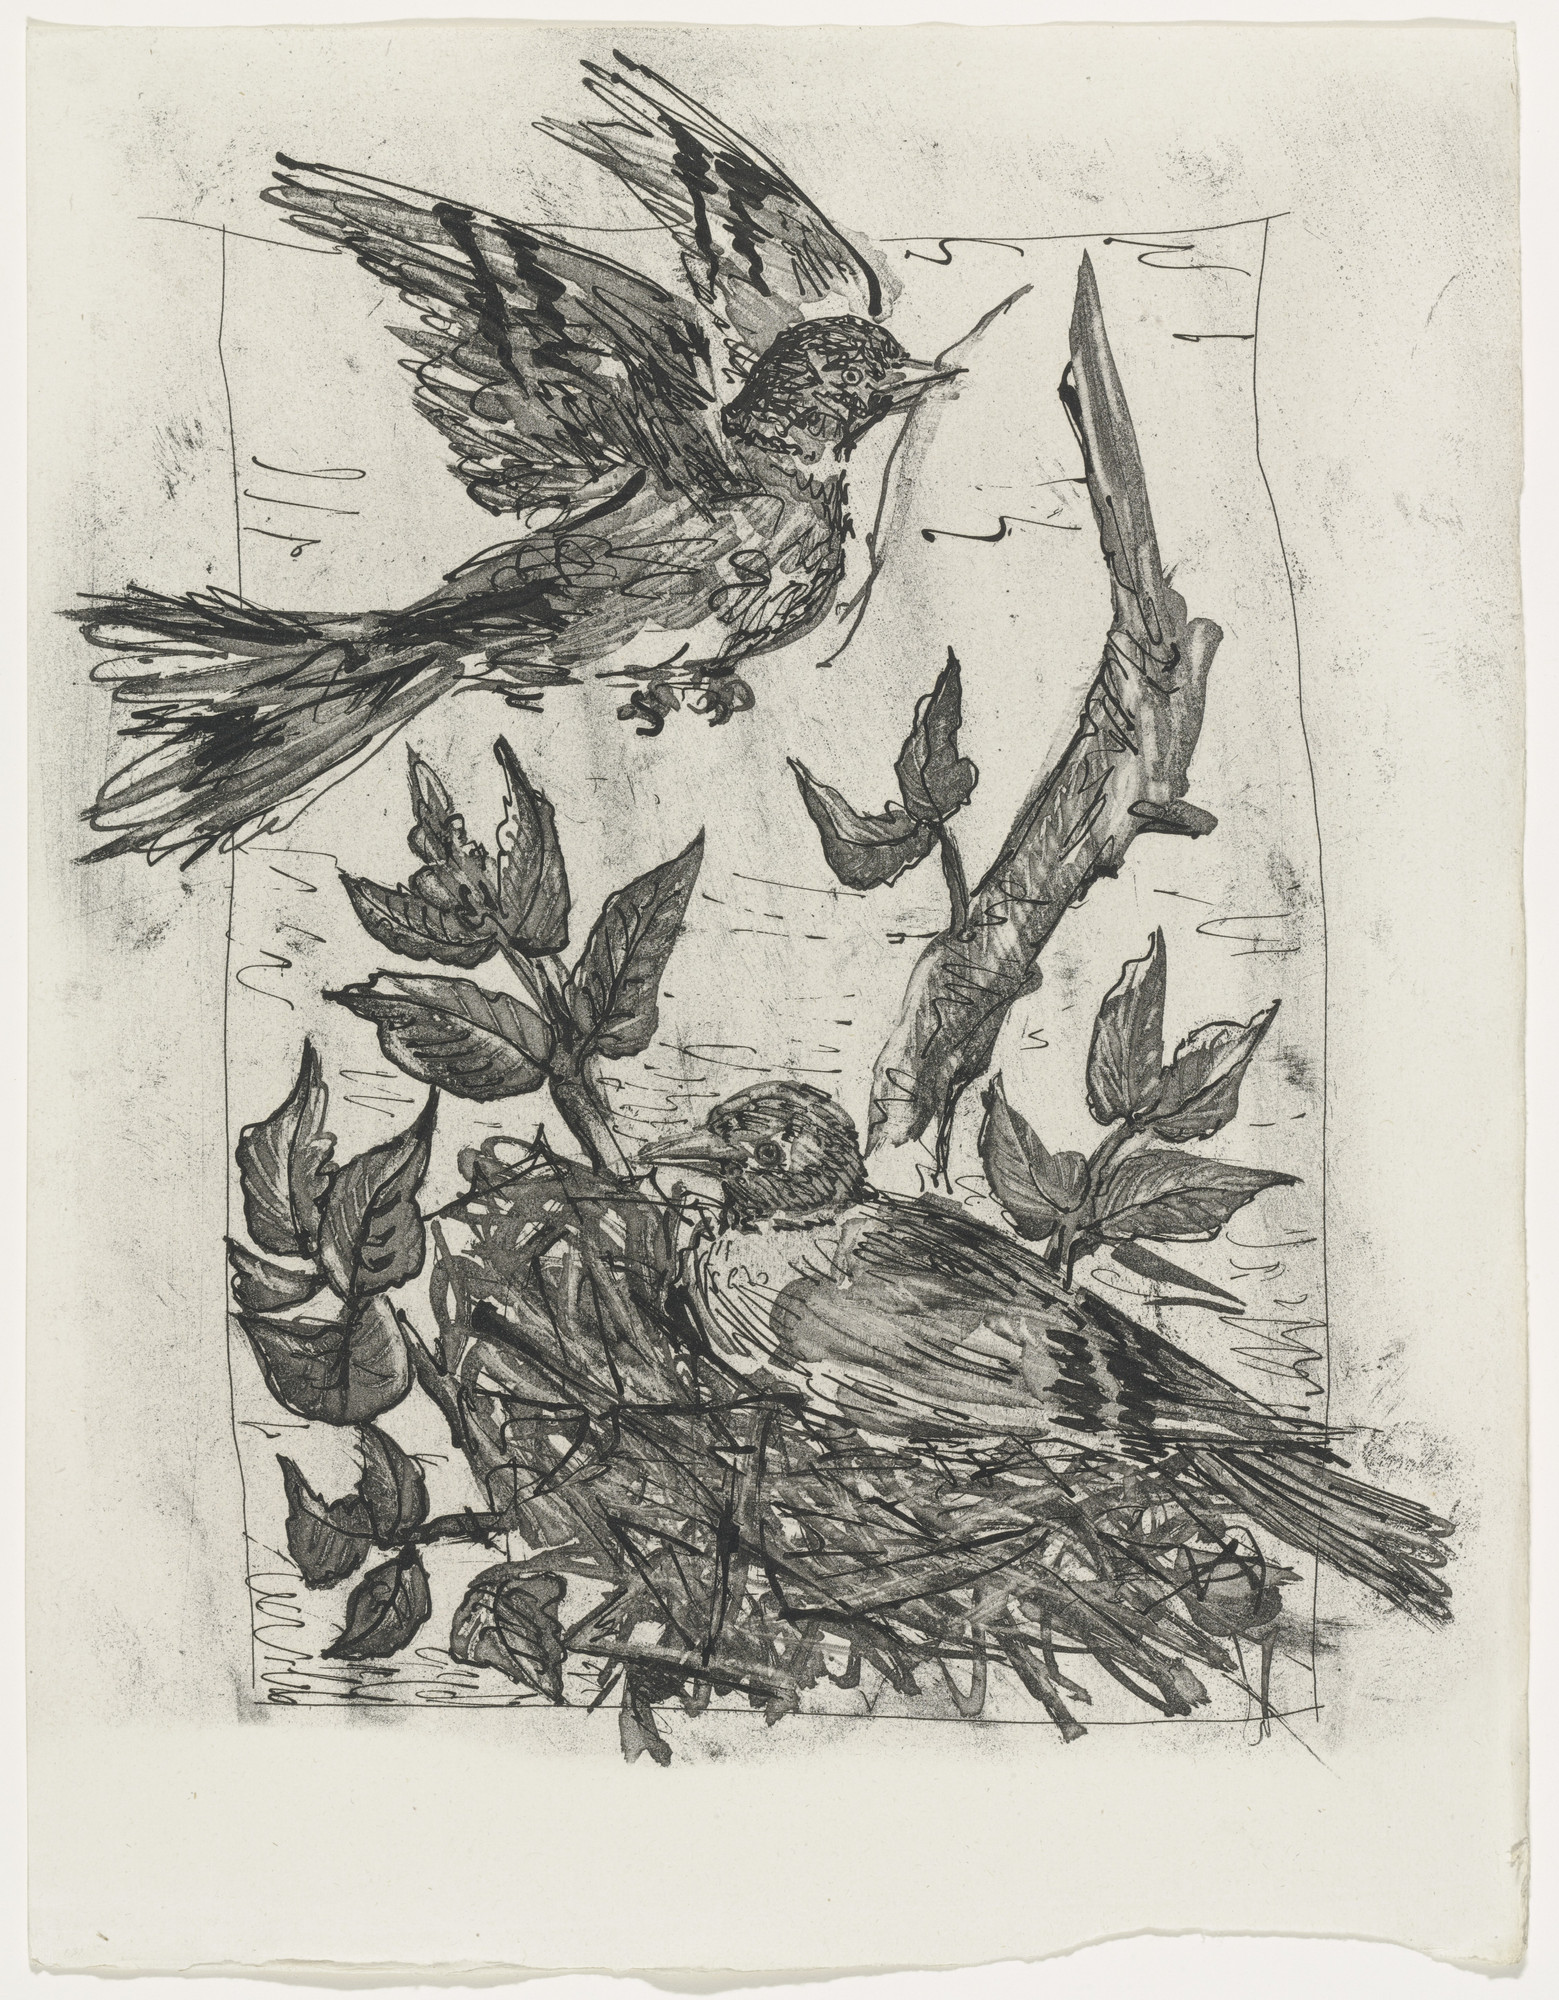 Pablo Picasso. The Goldfinch (Le Chardonneret) (plate, facing page 130) from Eaux-fortes originale pour des textes de Buffon (Histoire naturelle). 1936, published 1942